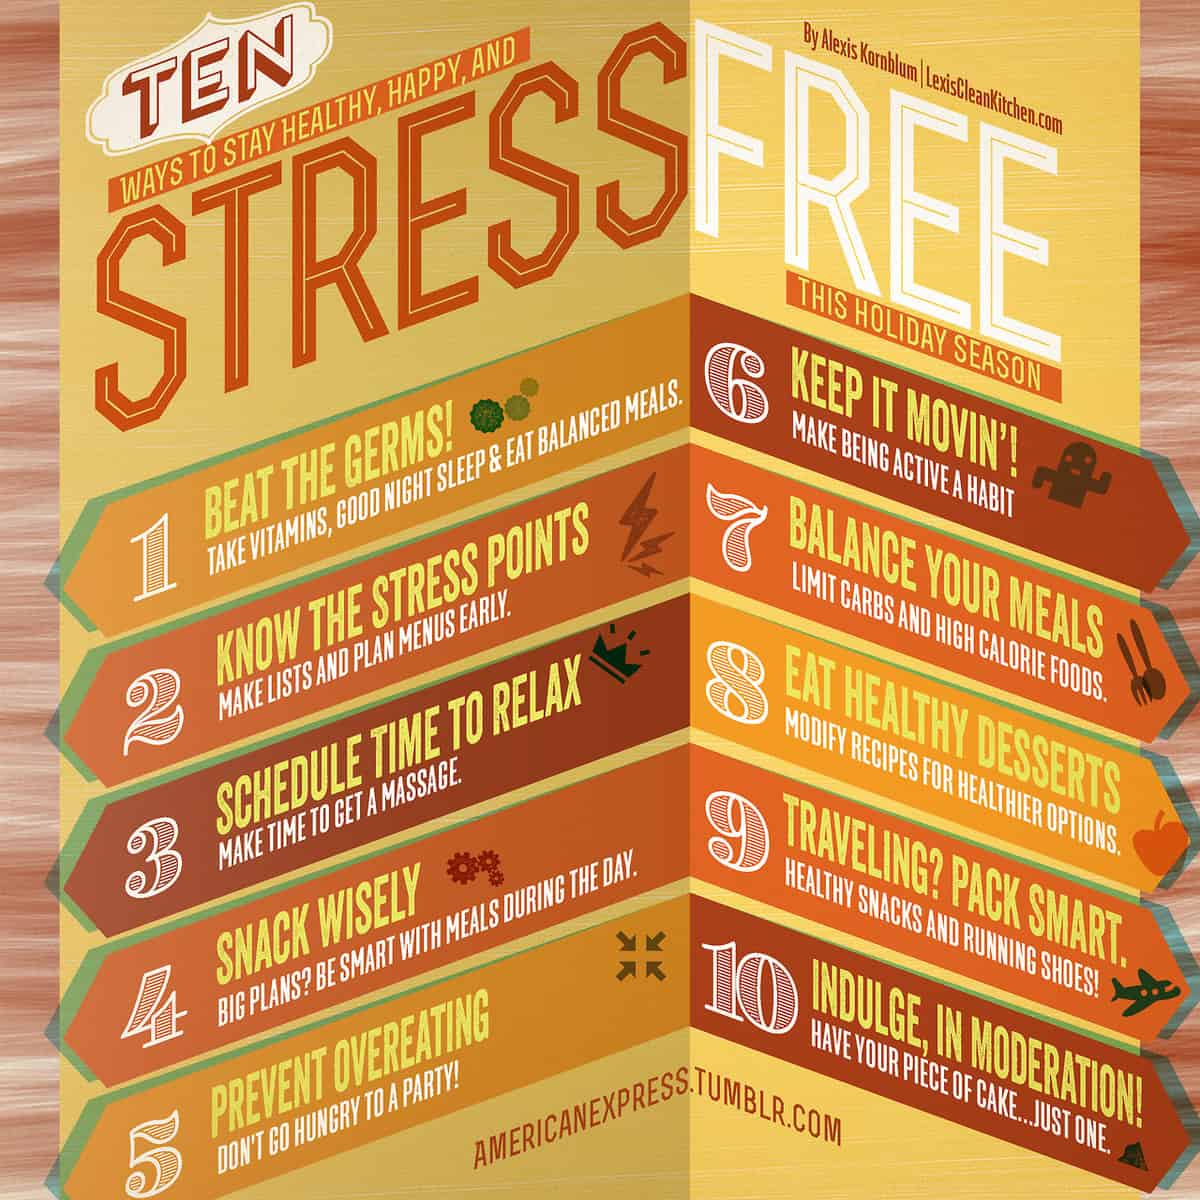 10 Ways to Stay Healthy, Happy, & Stress-free